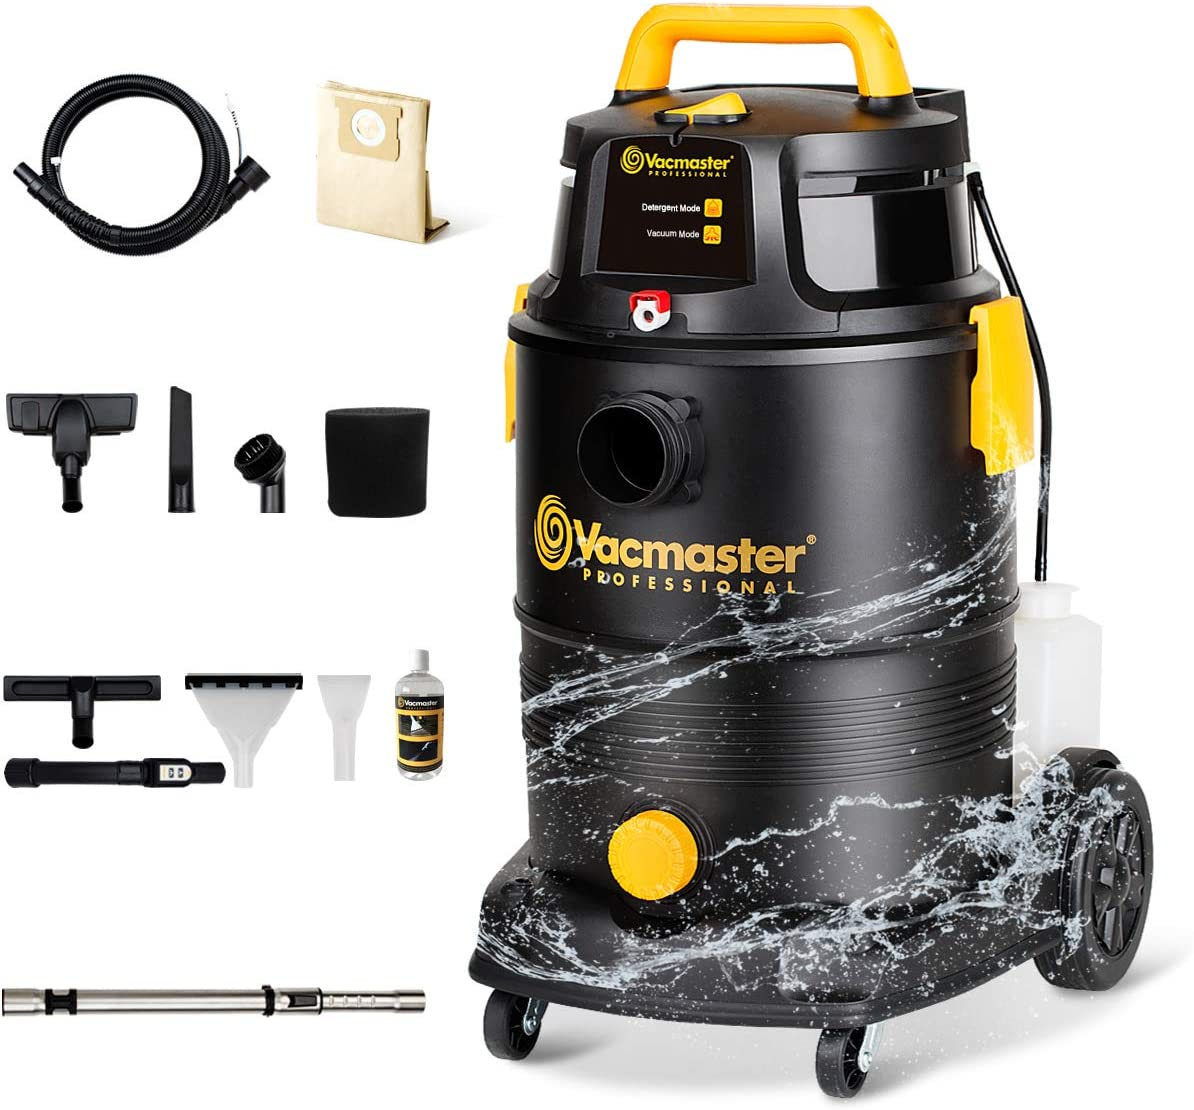 Vacmaster Wet Dry 3 in 1 Portable Carpet Cleaner